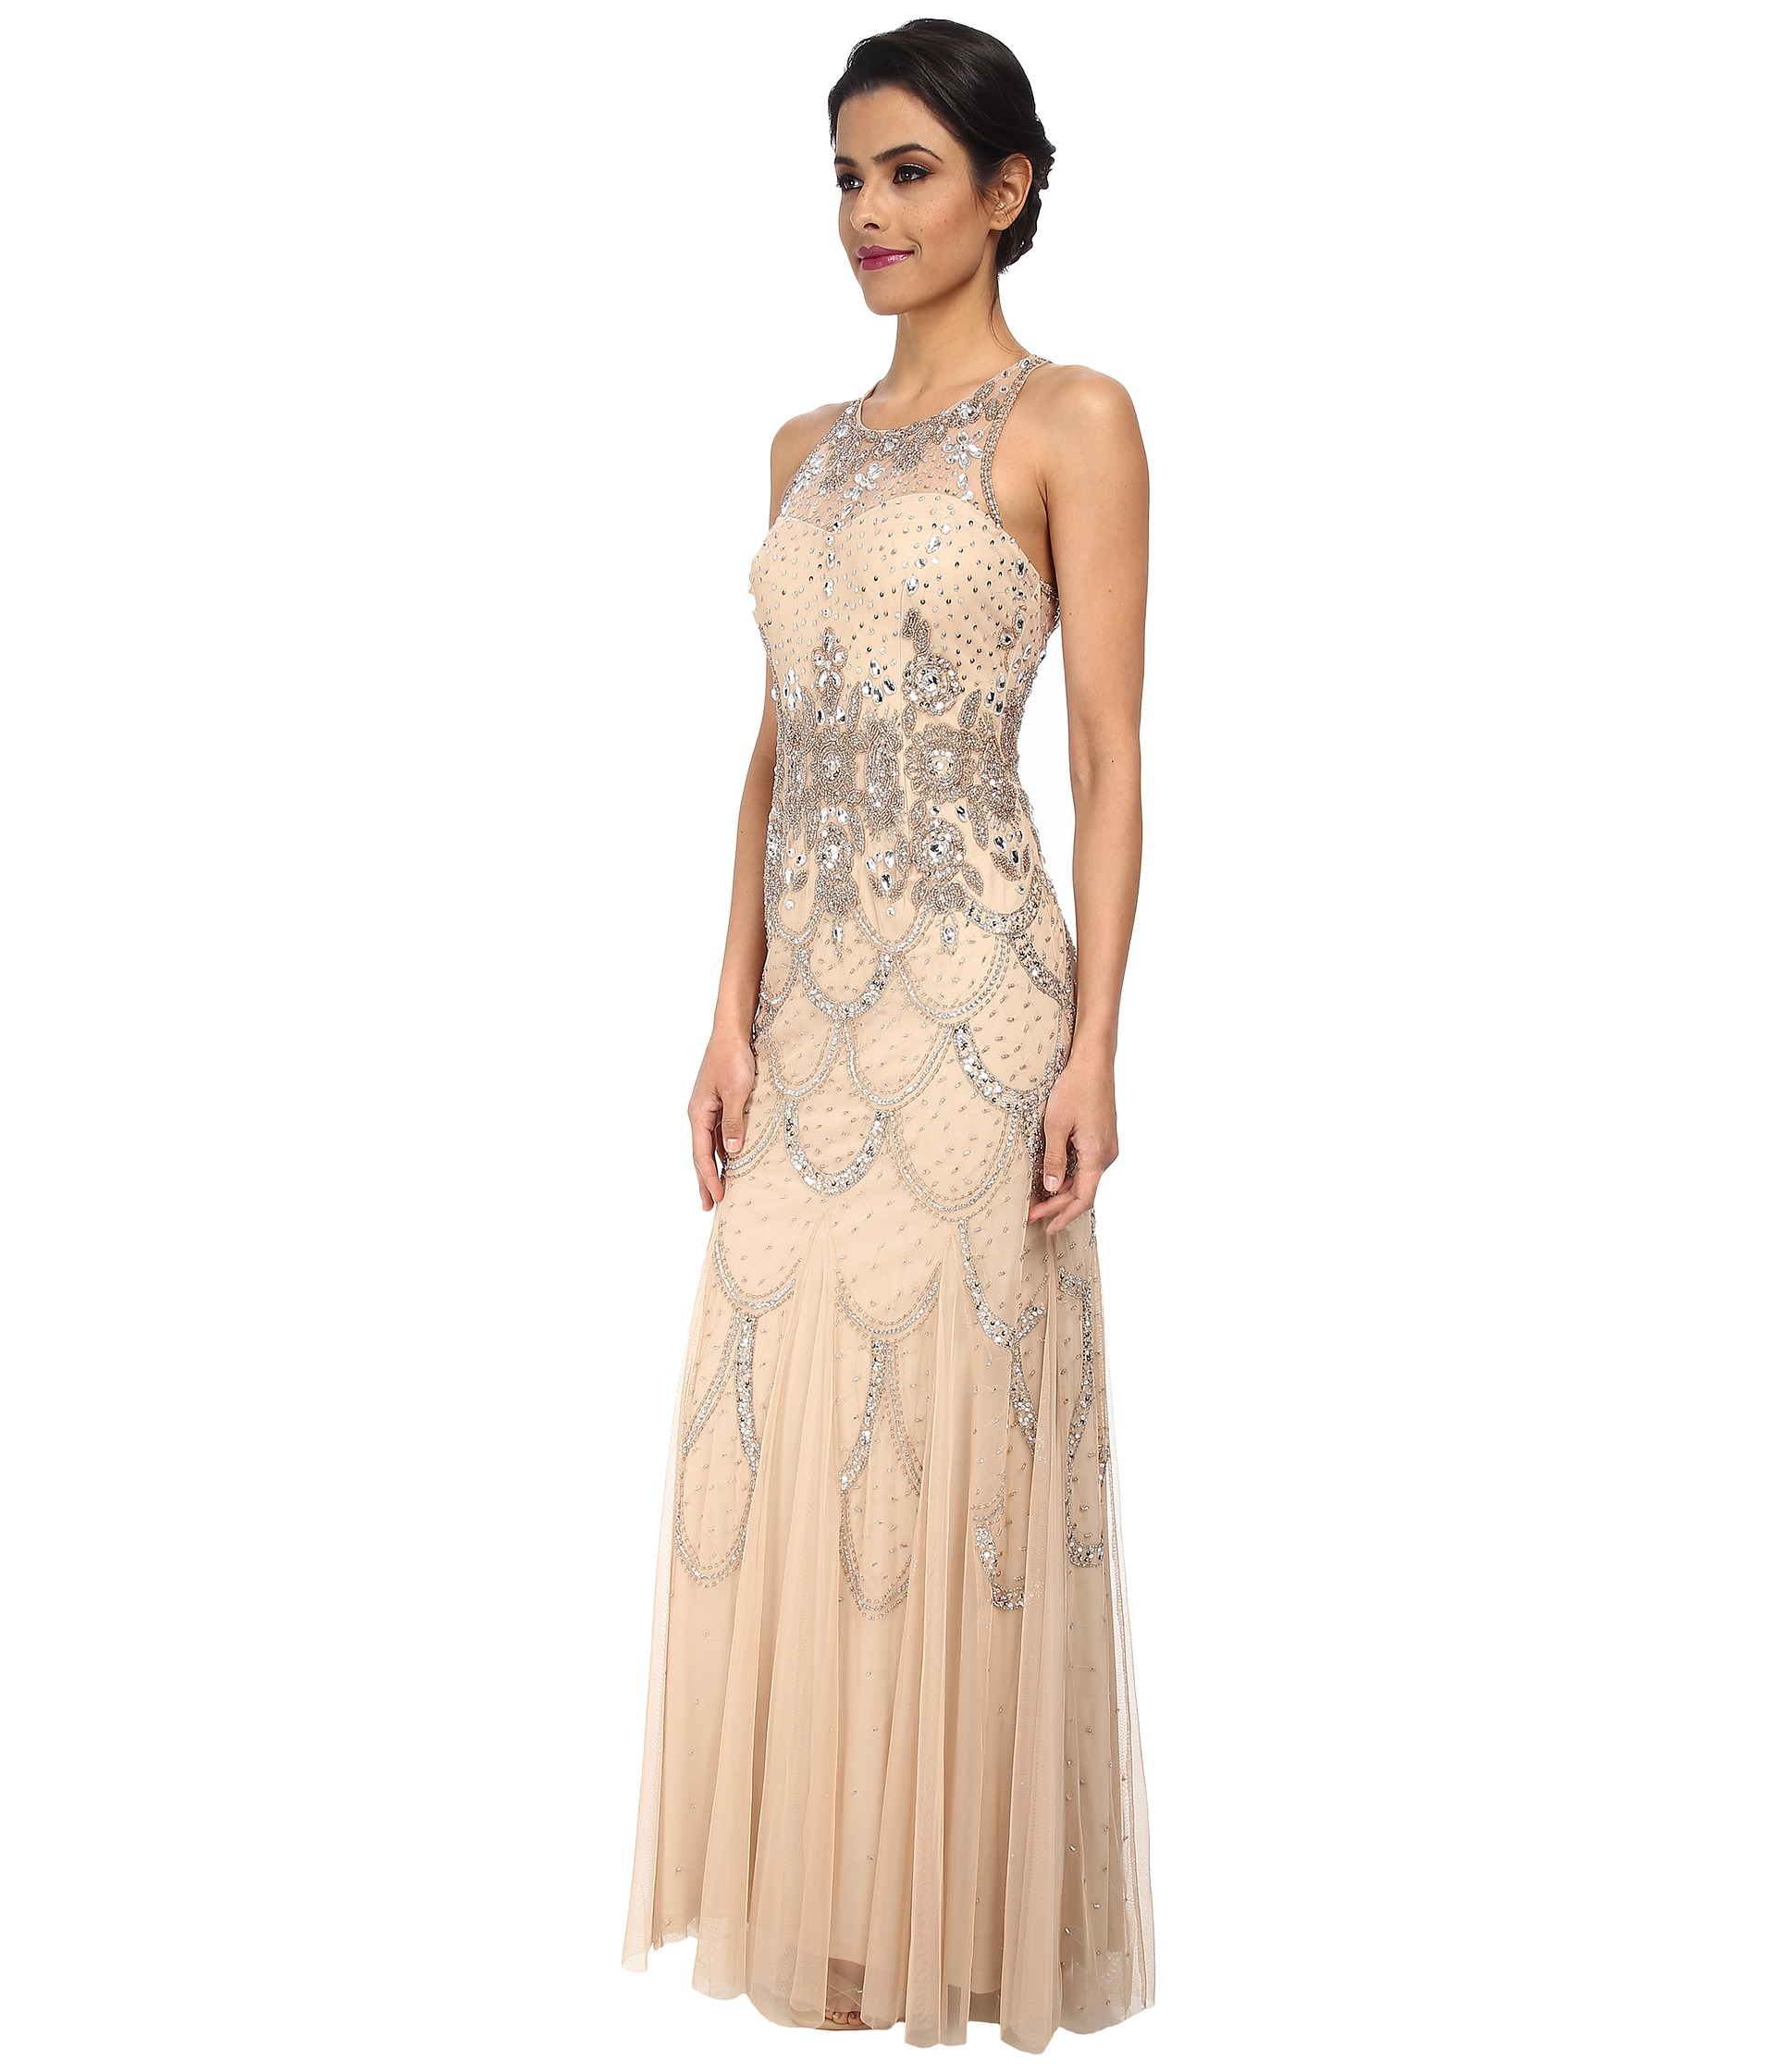 Lyst - Adrianna Papell Halter Fully Beaded Gown in Natural